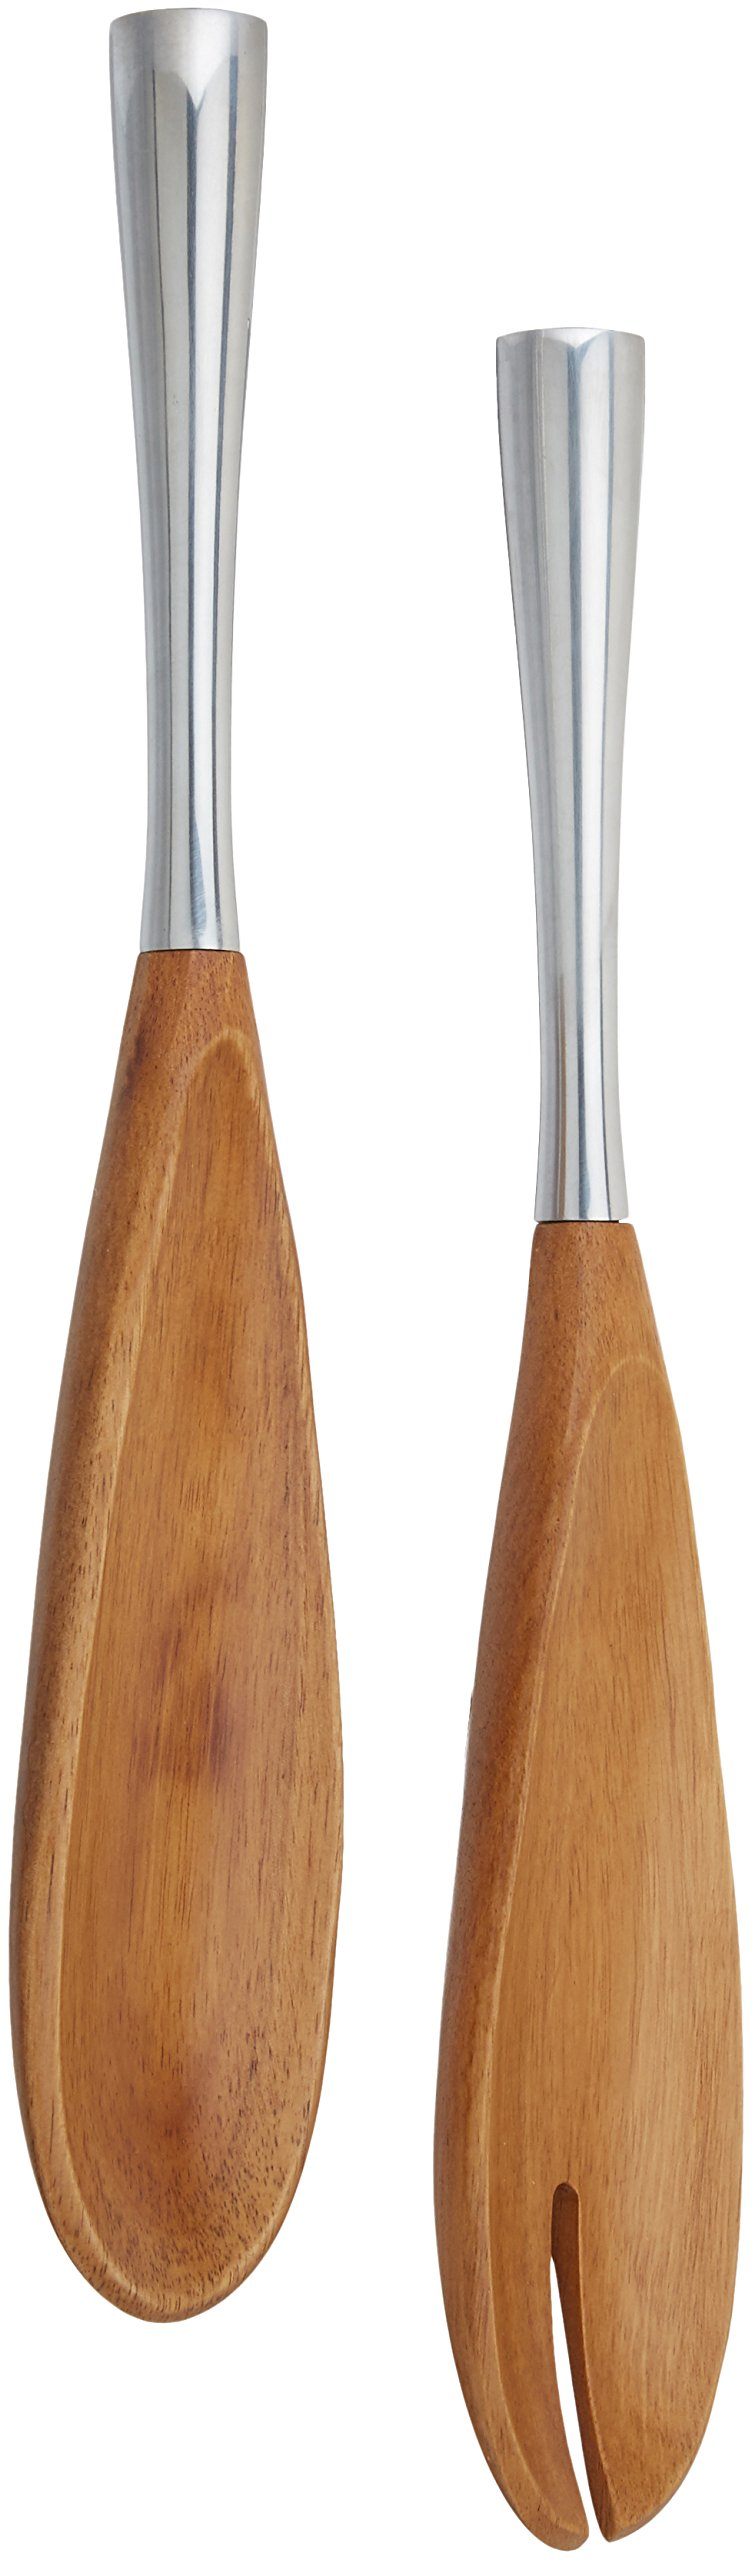 Dansk Dansk Wood Metal/Wood Salad Servers, Set of 2, Silver